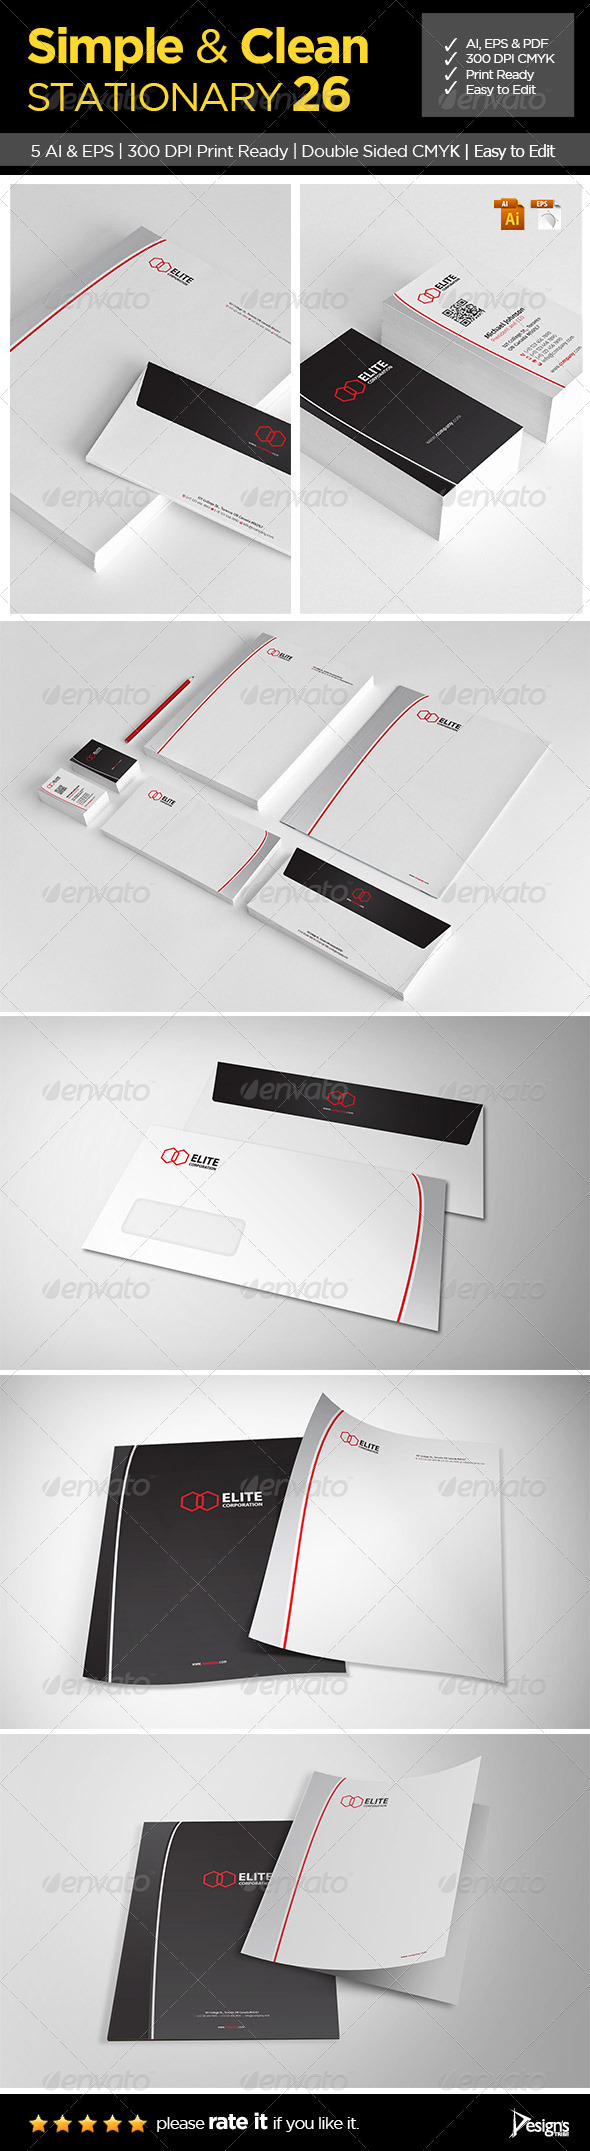 GraphicRiver Simple and Clean Stationary 26 7068801